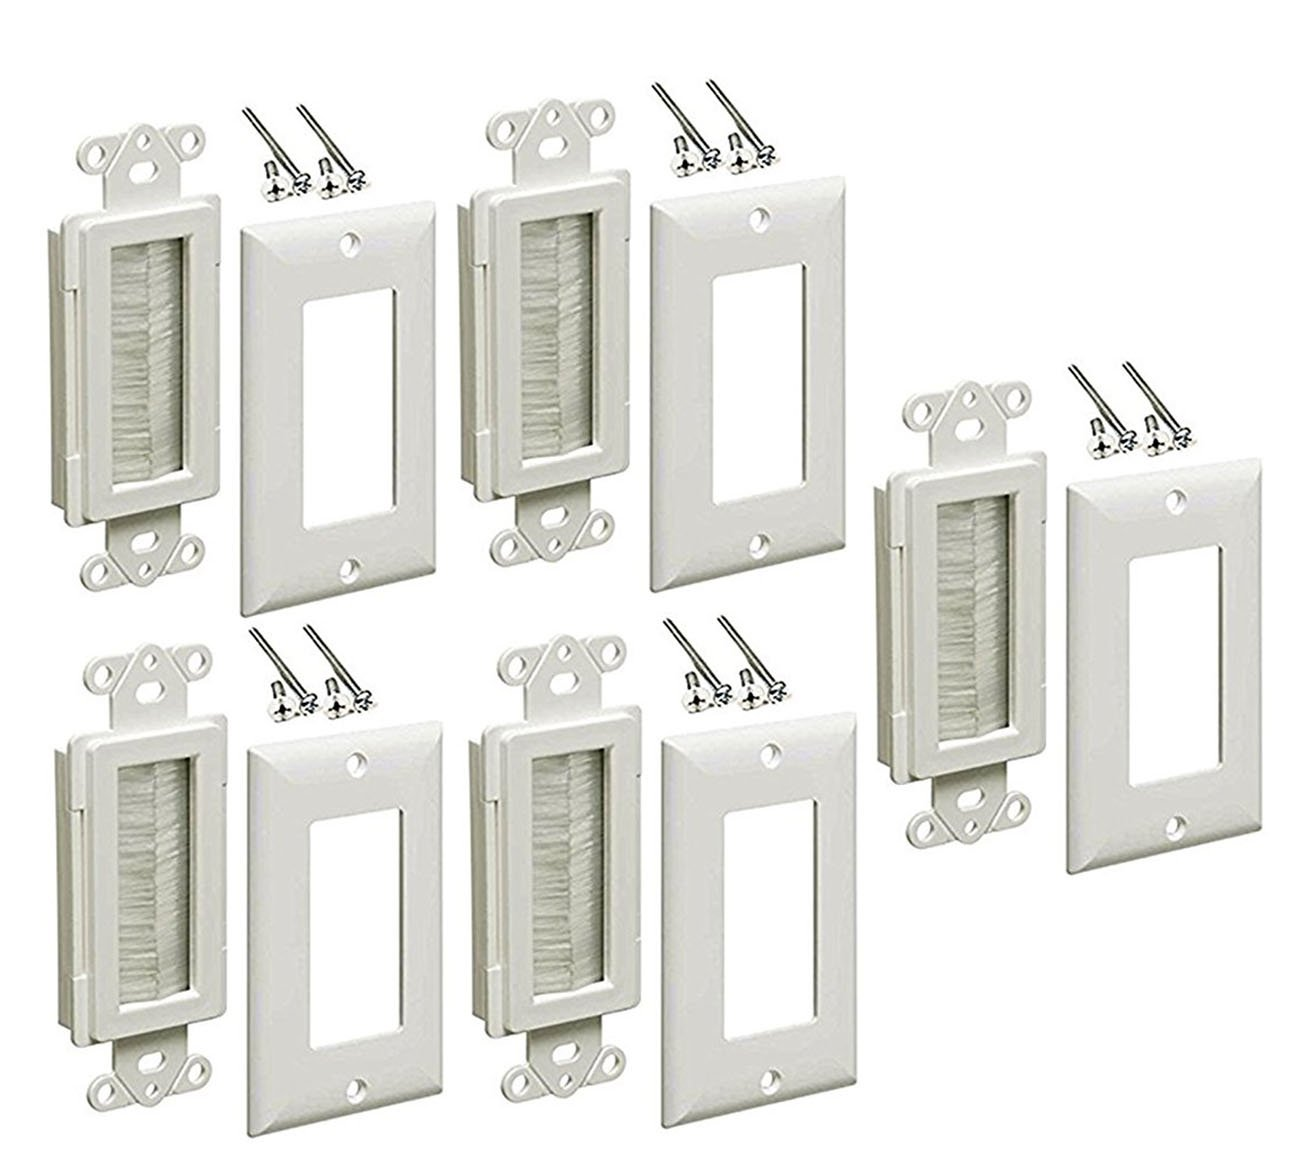 iMBAPrice Brushed Wall Plate - Decora Style Cable Pass Through Insert for Wires Wall Socket Plug Port/HDTV/HDMI/Home Theater Systems and More (Pack of 5) - White by iMBAPrice